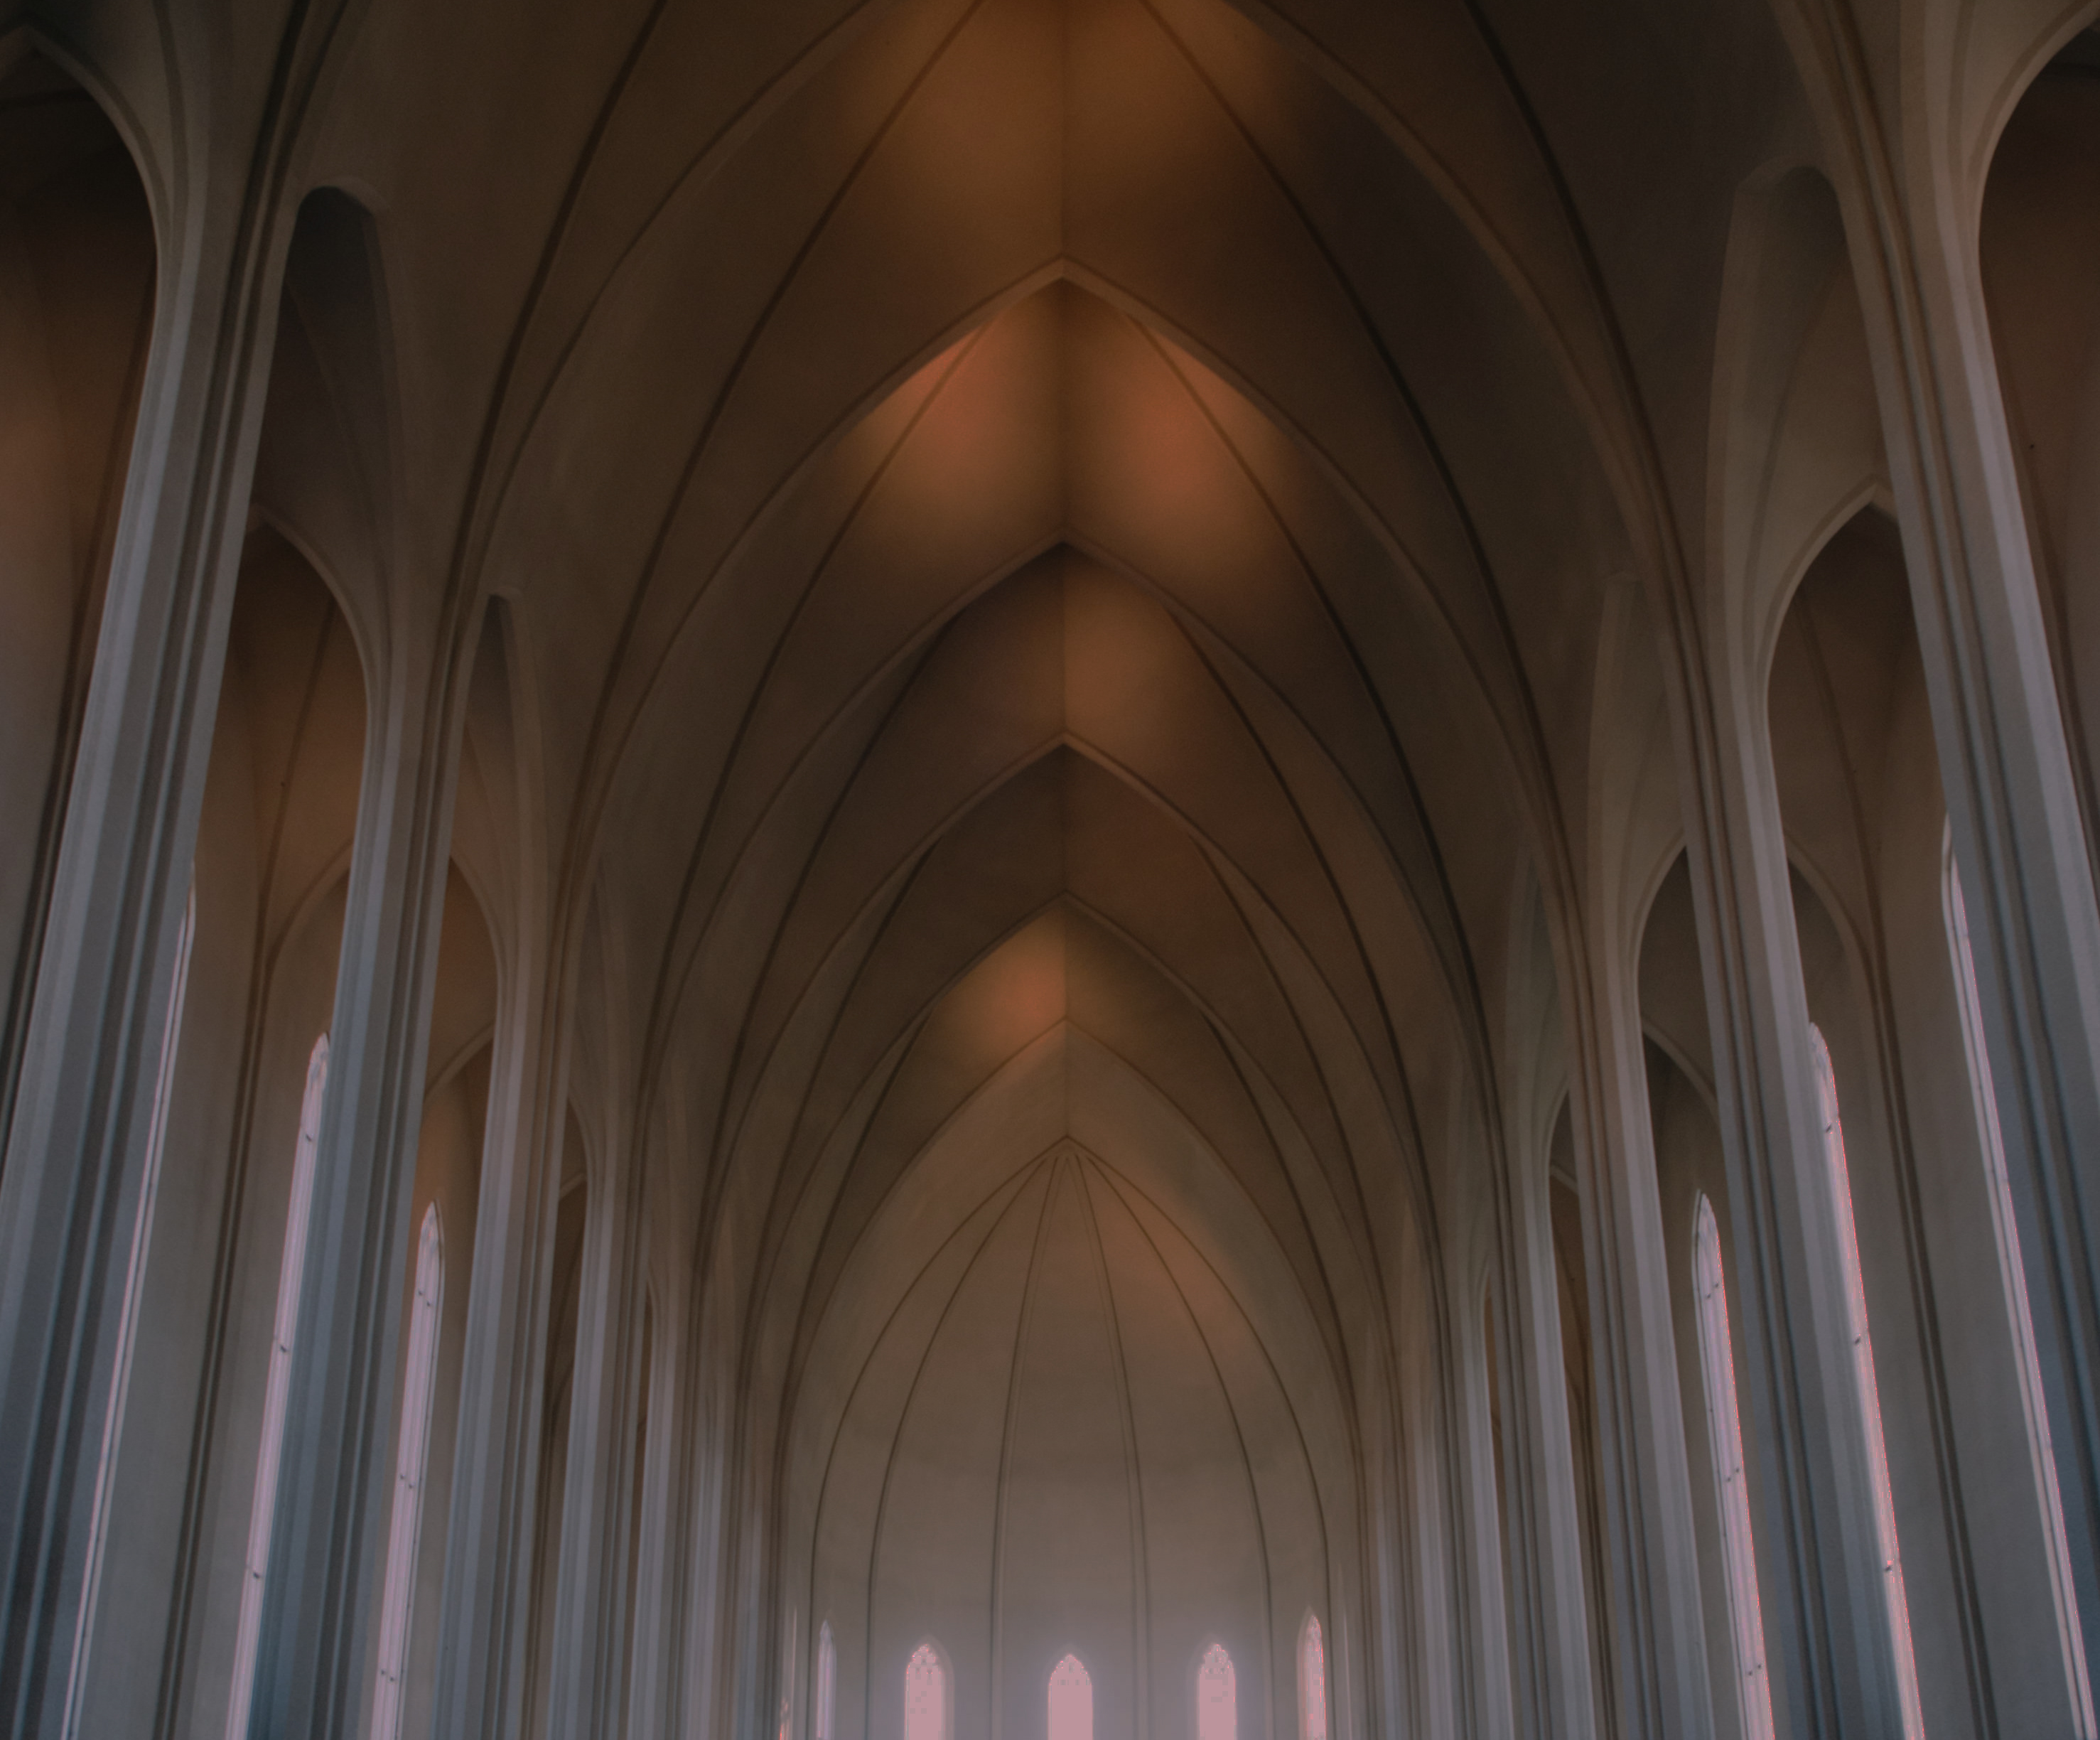 ABOUT CHAPTERHOUSE CONSULTING - CHURCH CEILING